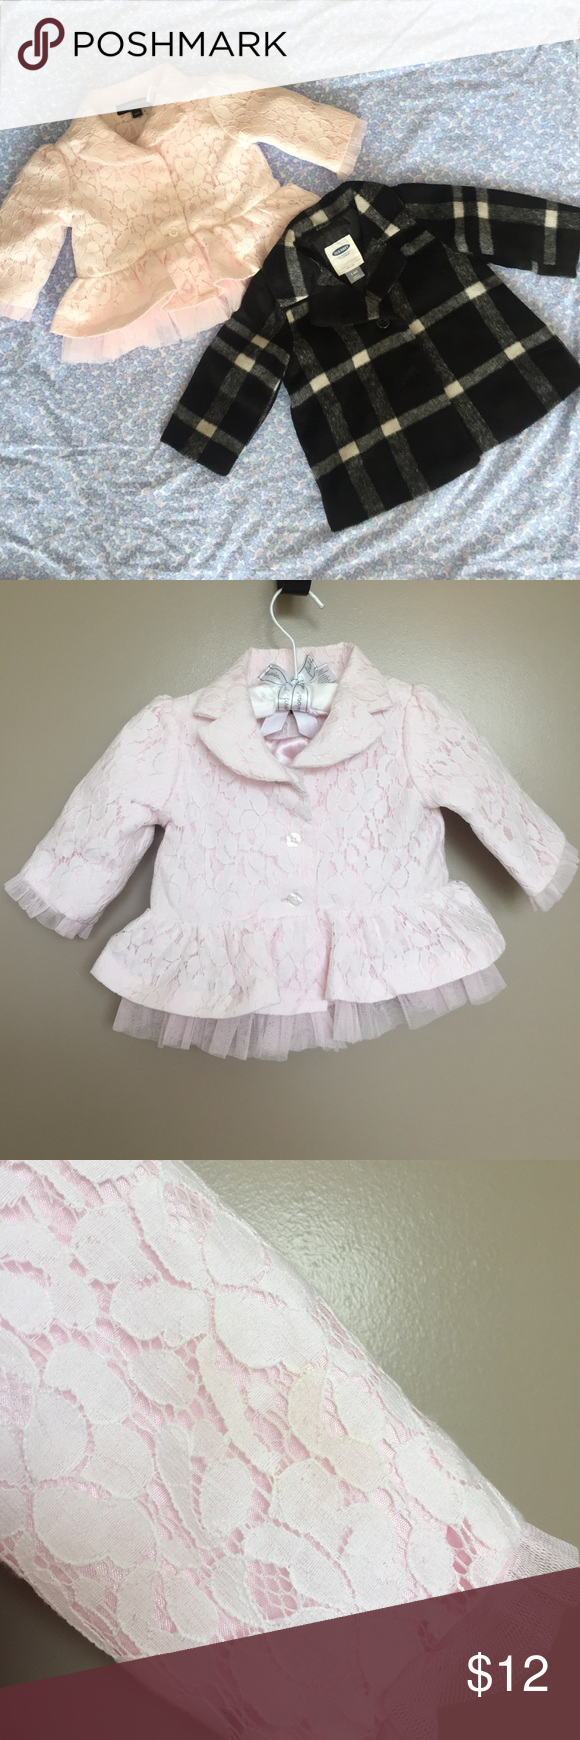 Bundle of 2 jacket/coat for baby girl Beautiful pink lace jacket with very slight discoloration on back of sleeve (as shown) size 6 months and cute black and white coat from old navy size 3-6 months Jackets & Coats